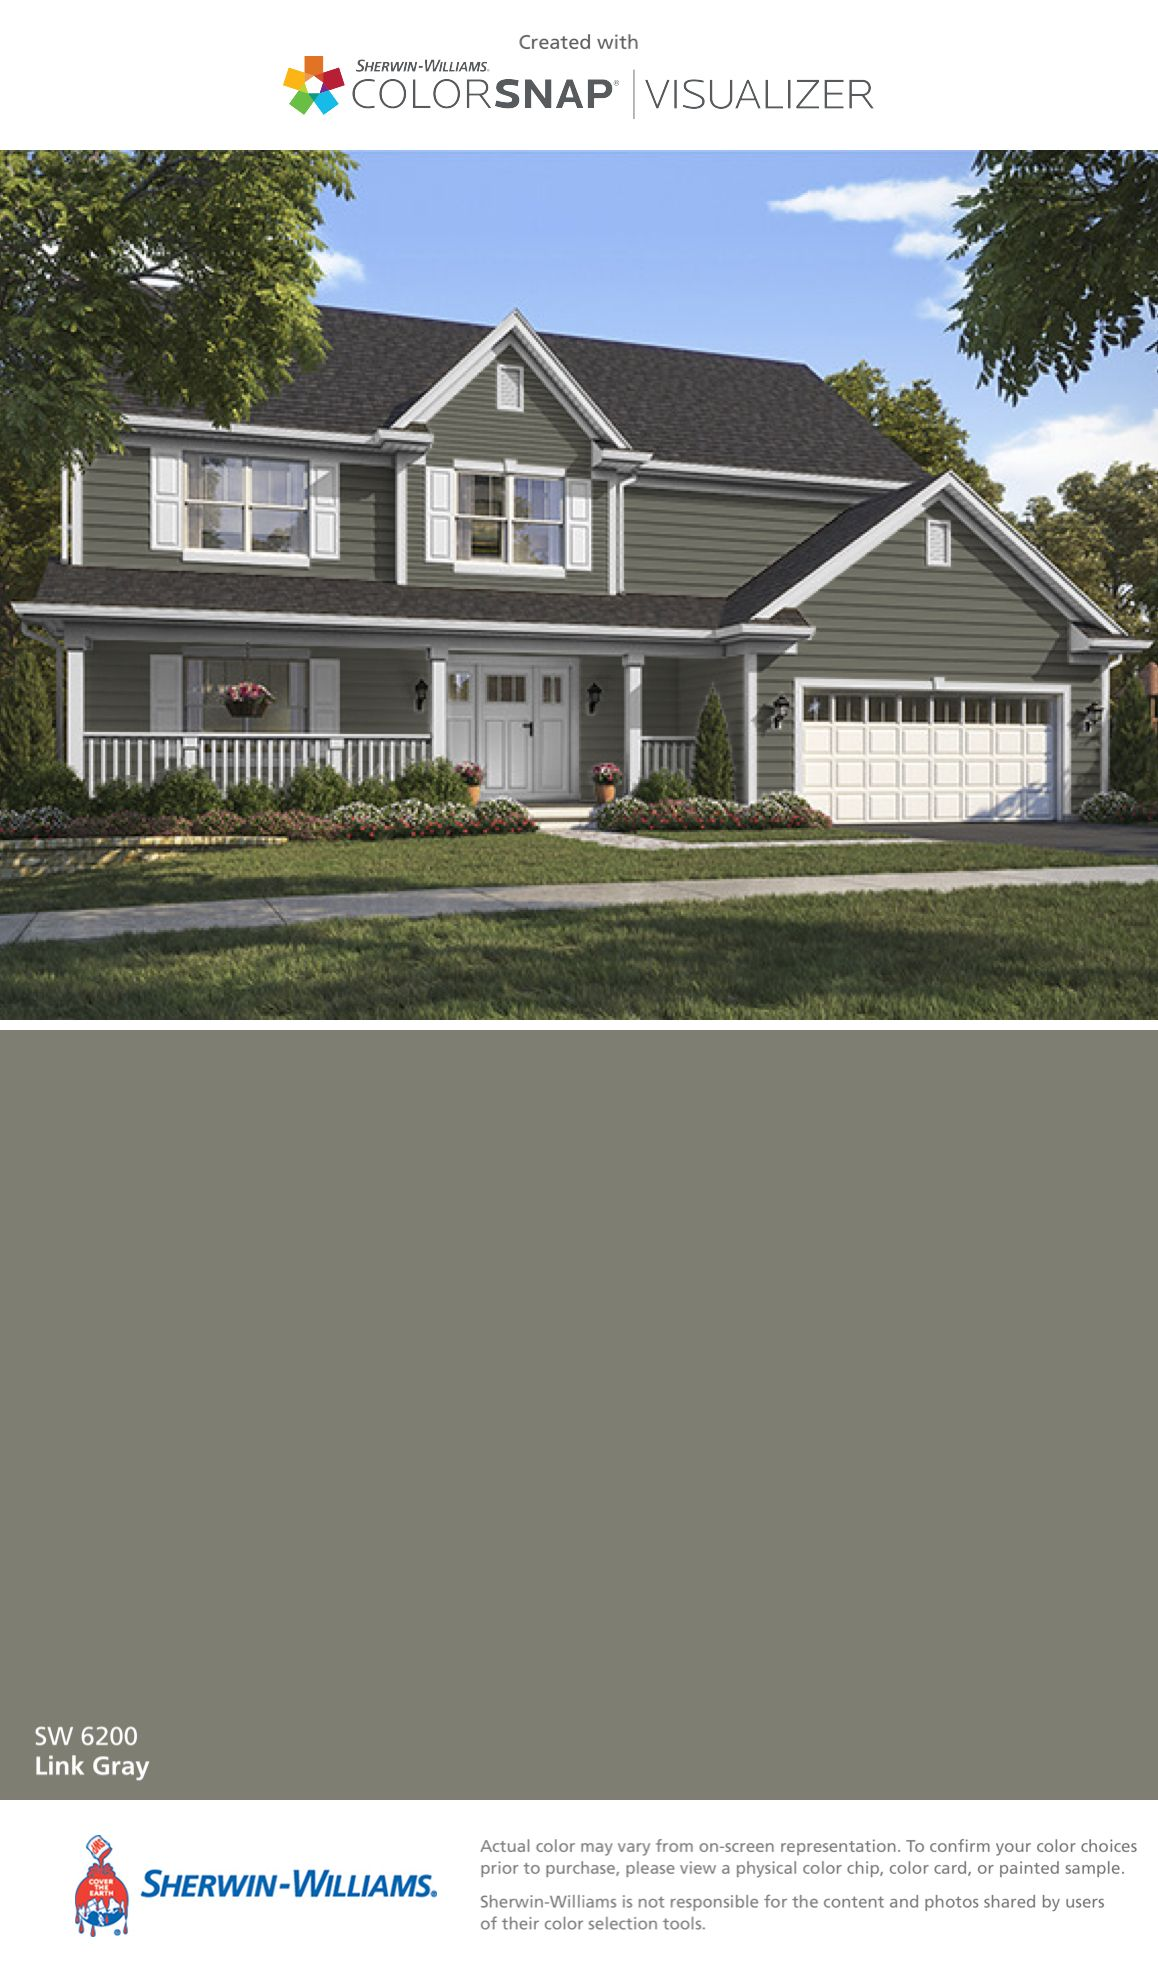 I Found This Color With Colorsnap Visualizer For Iphone By Sherwin Williams Link Gray Sw 6200